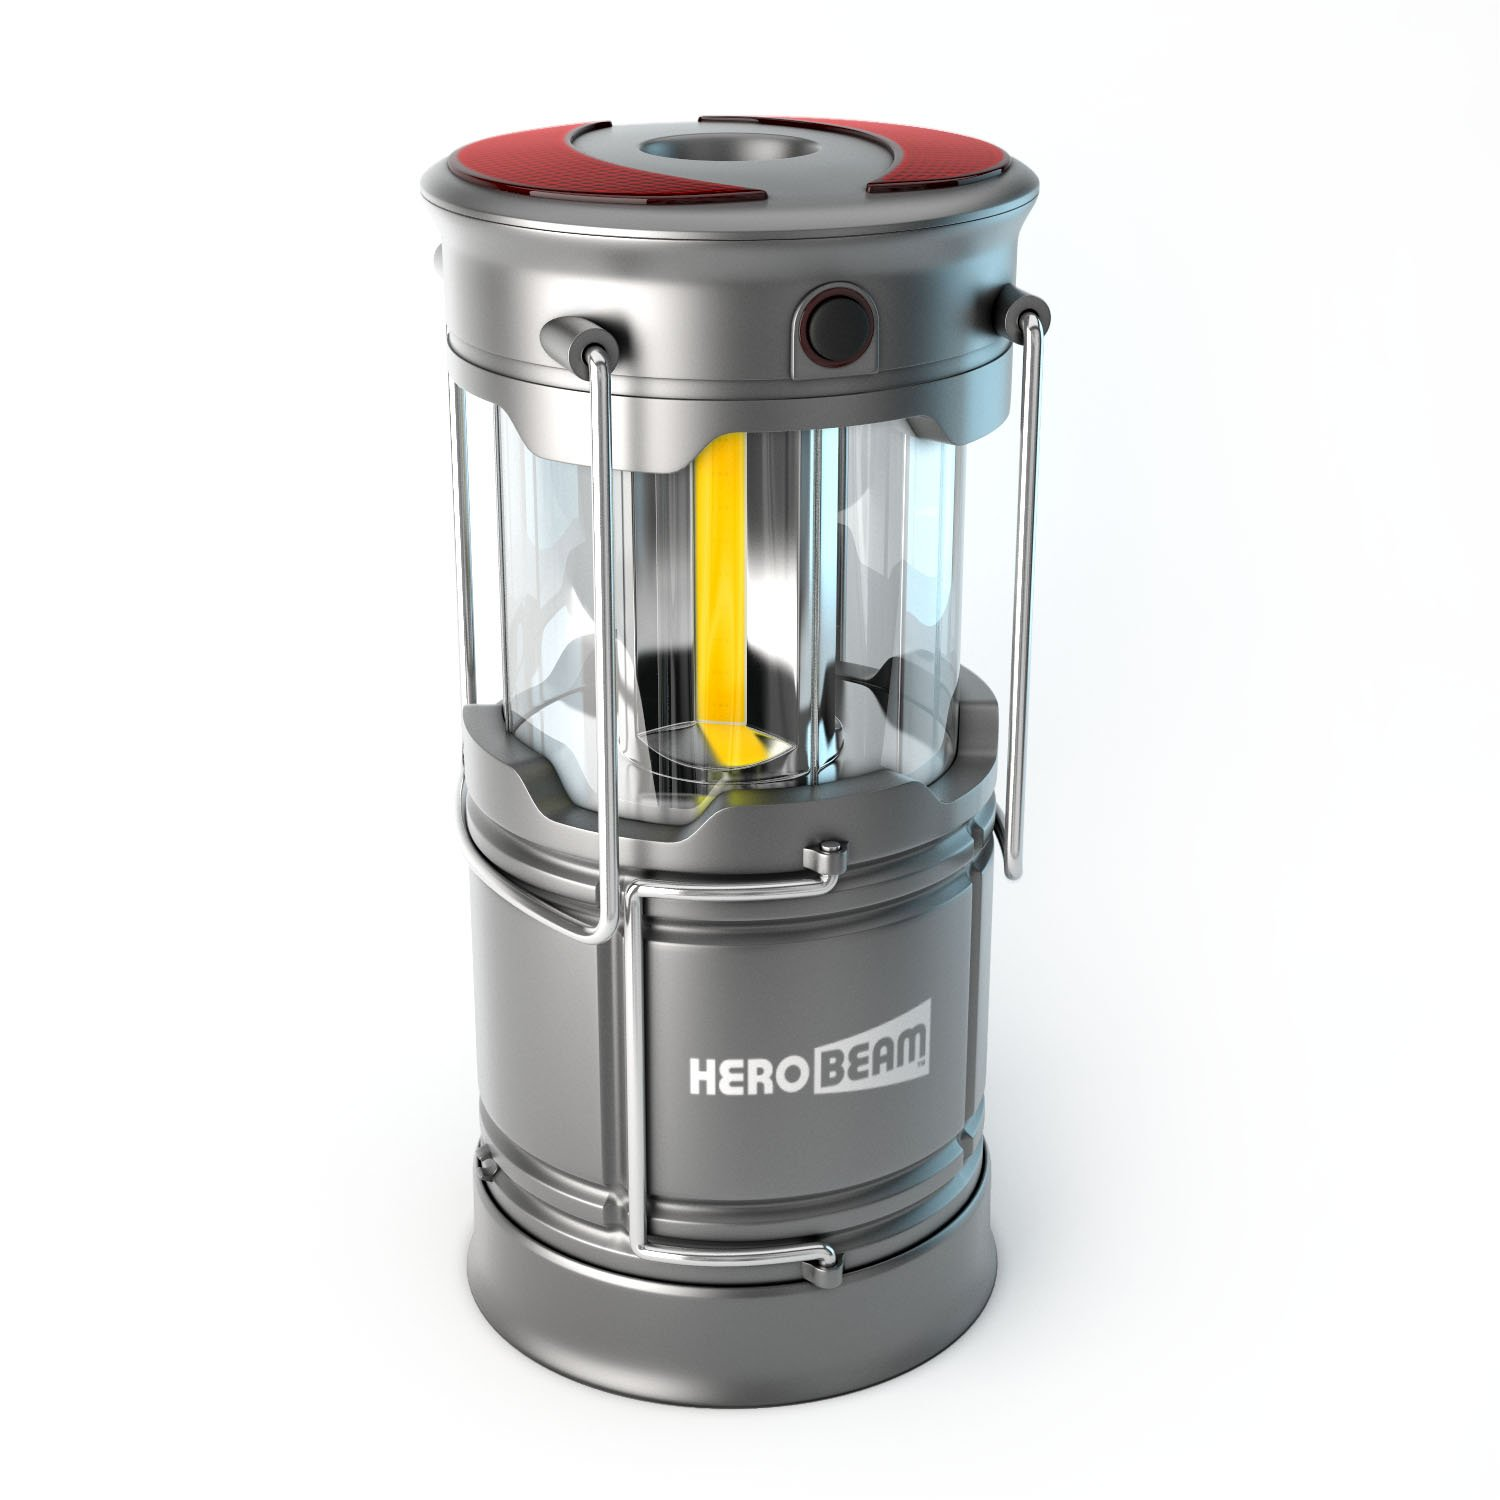 HeroBeam V3 LED Lantern - The Ultimate Collapsible Tough Lamp for Camping, Fishing, Car, Shop and Emergencies - Magnetic Lantern, Flashlight and Beacon in One! - 5 YEAR WARRANTY